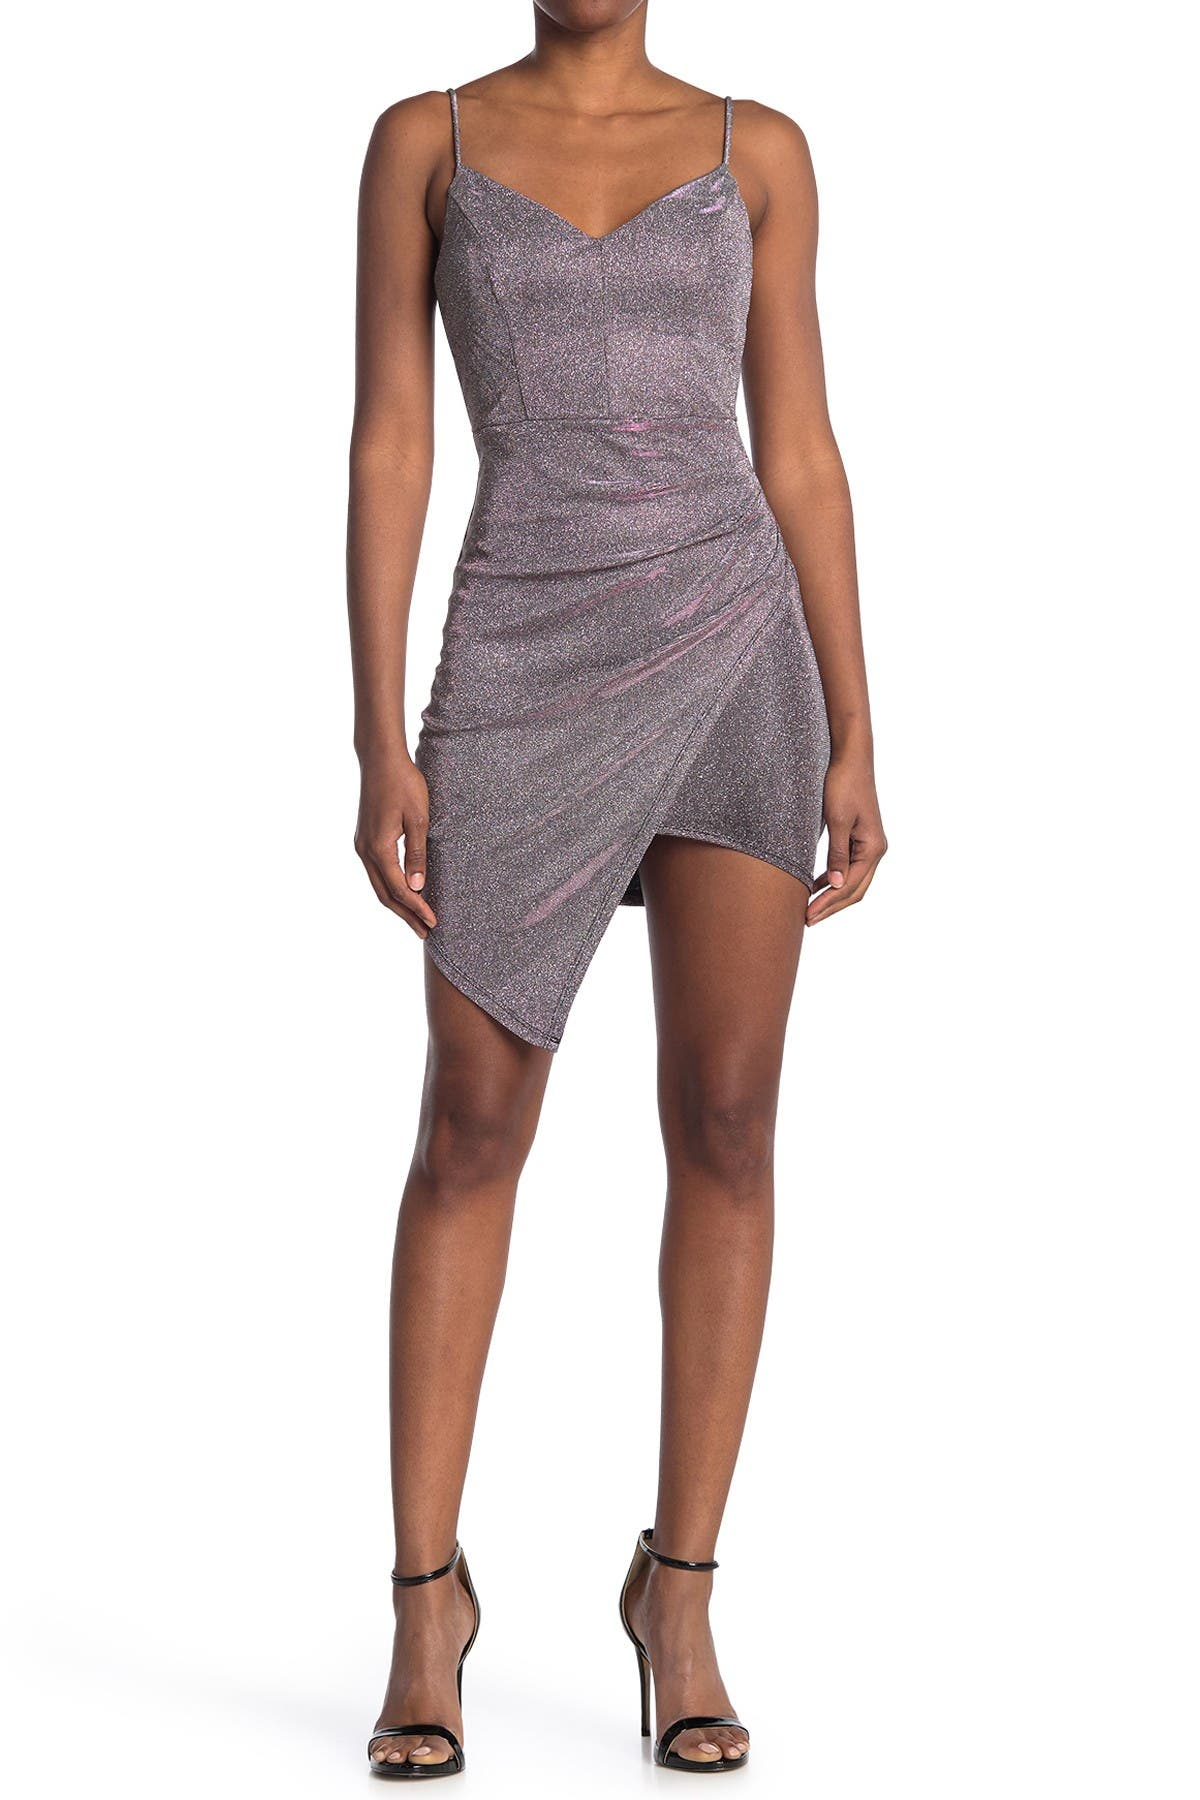 Image of Love, Nickie Lew Shimmer V-Neck Ruched Asymmetrical Bodycon Dress